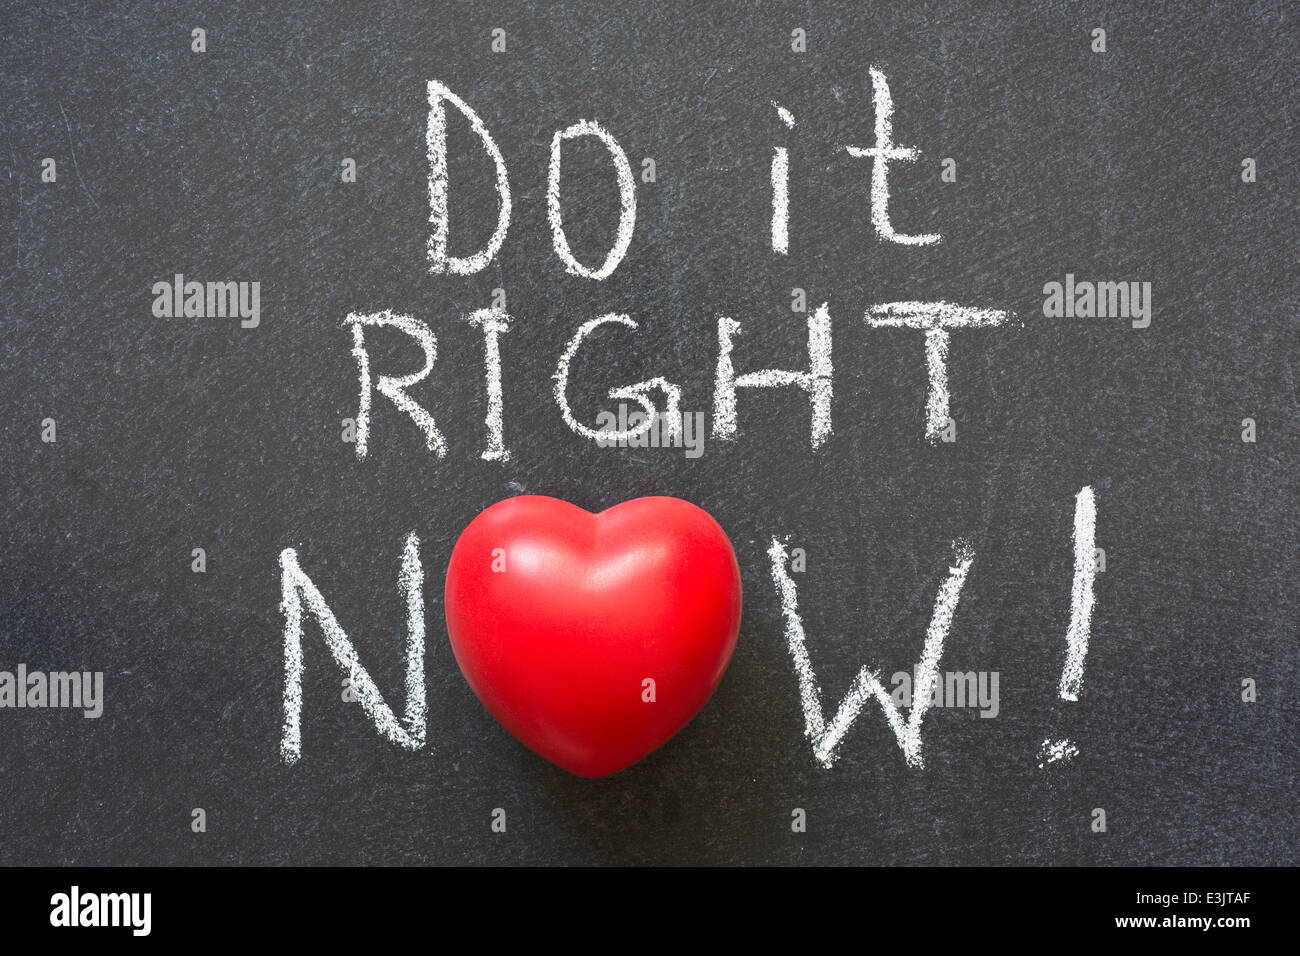 Do it right now exclamation handwritten on chalkboard with heart do it right now exclamation handwritten on chalkboard with heart symbol instead of o biocorpaavc